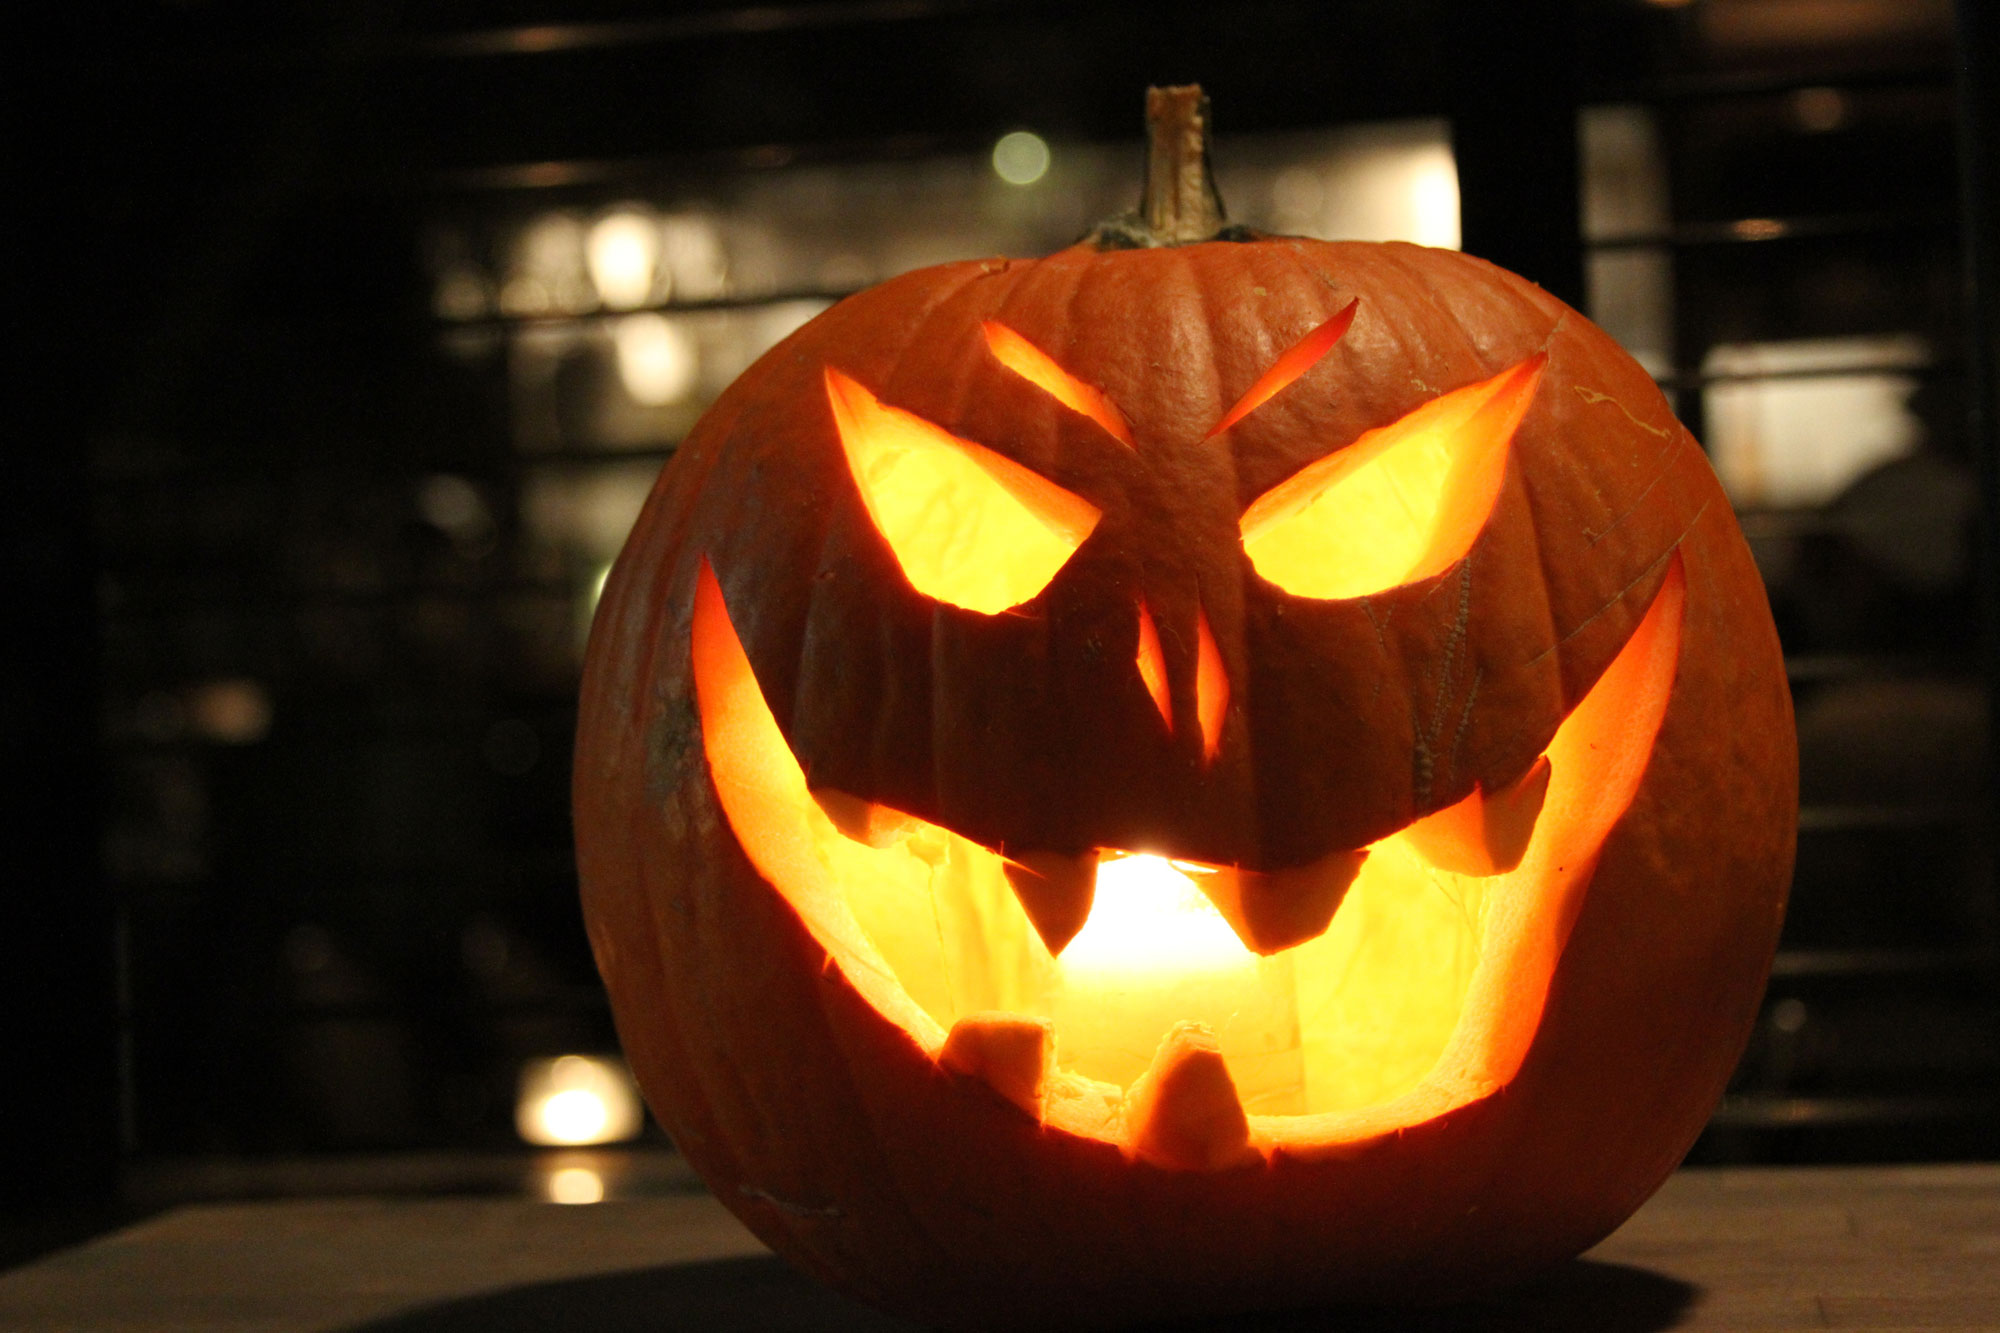 An illuminated Jack-O-Lantern. GETTY IMAGES/Ashley Sandberg/EyeEm